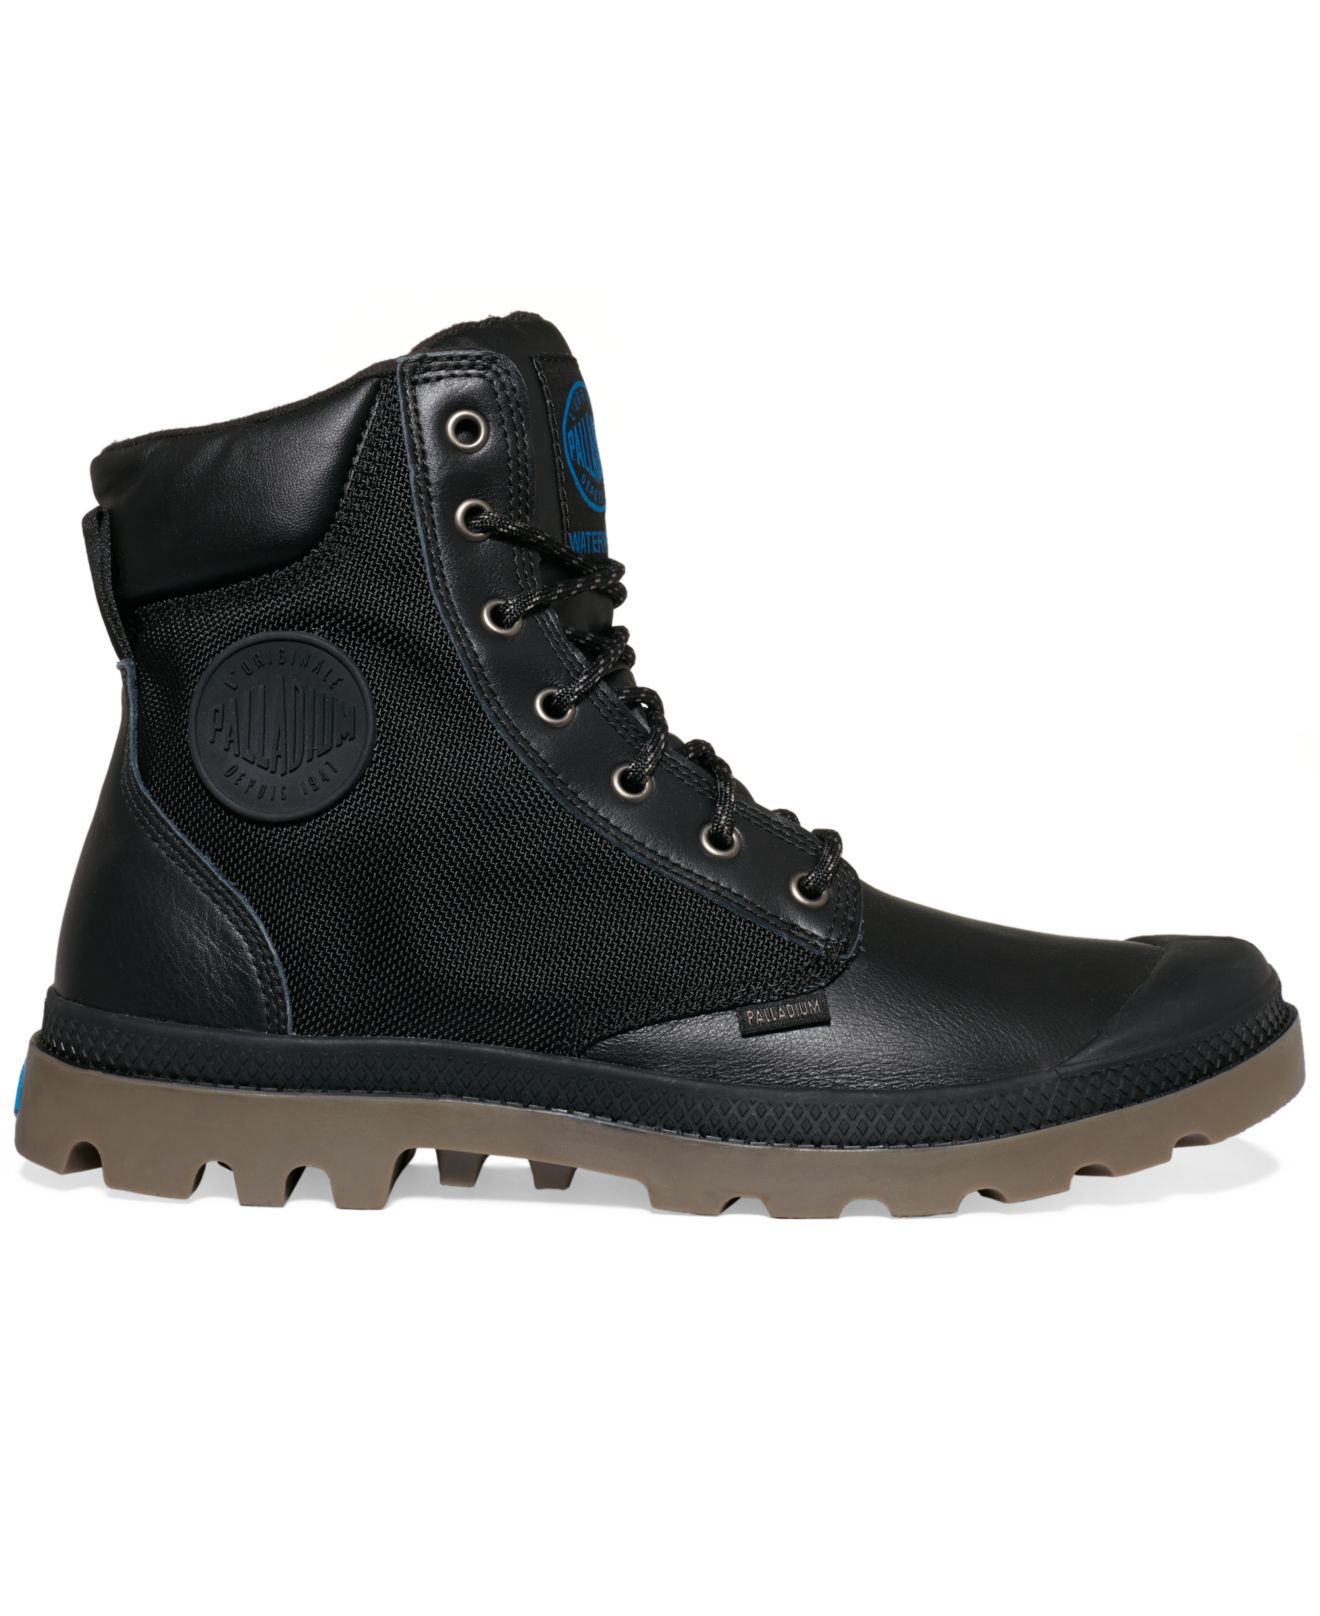 Palladium Pampa Sport Cuff Wp2 Boots In Black For Men Lyst